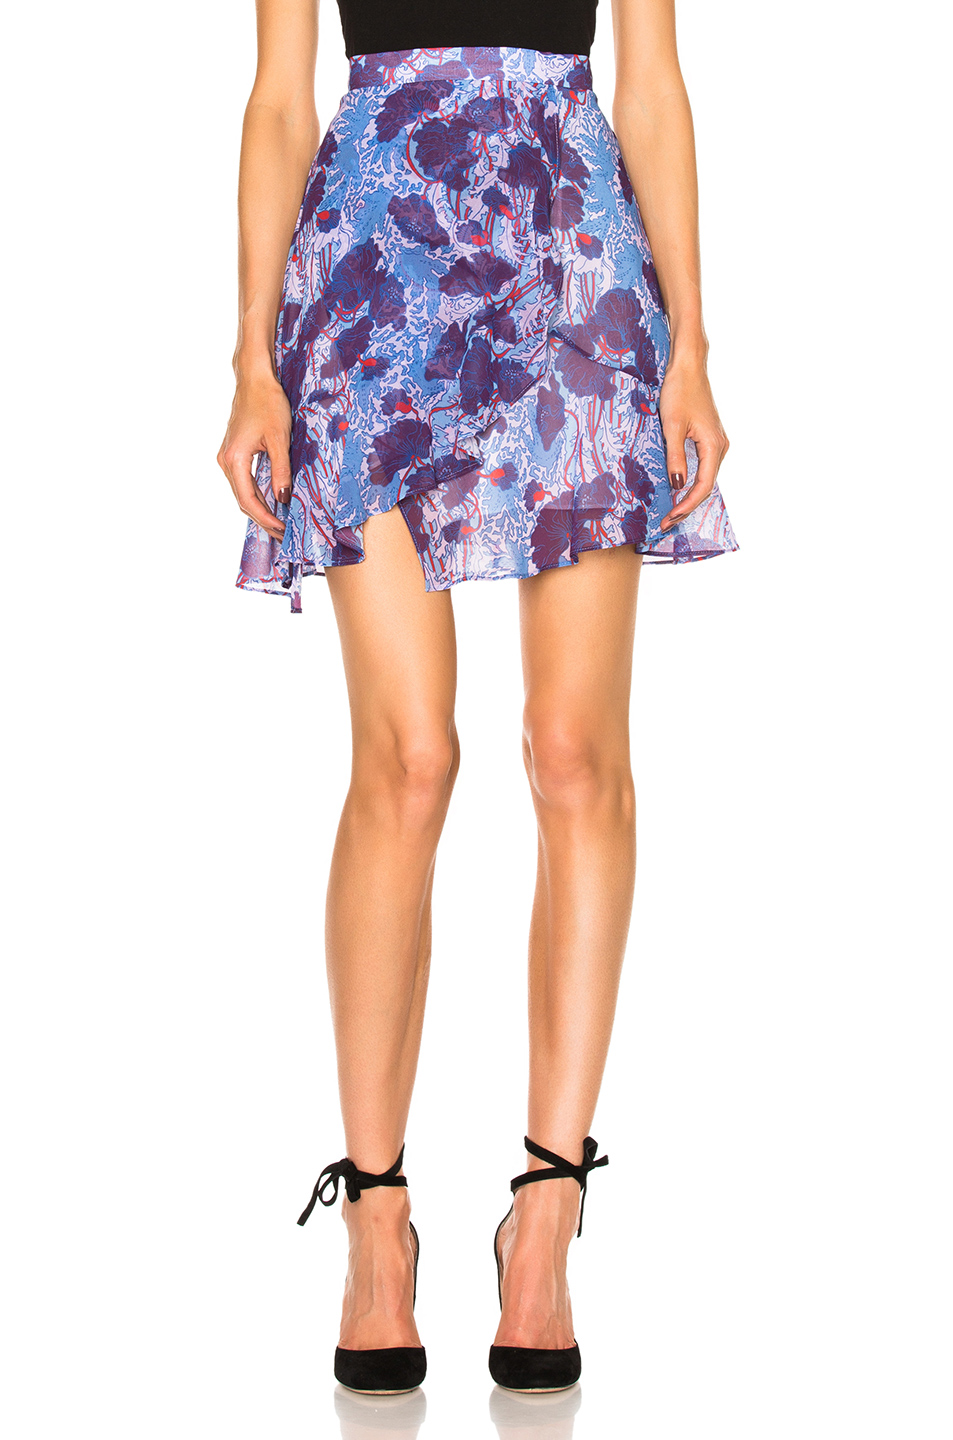 Carven Floral Mini Skirt in Blue,Floral,Purple